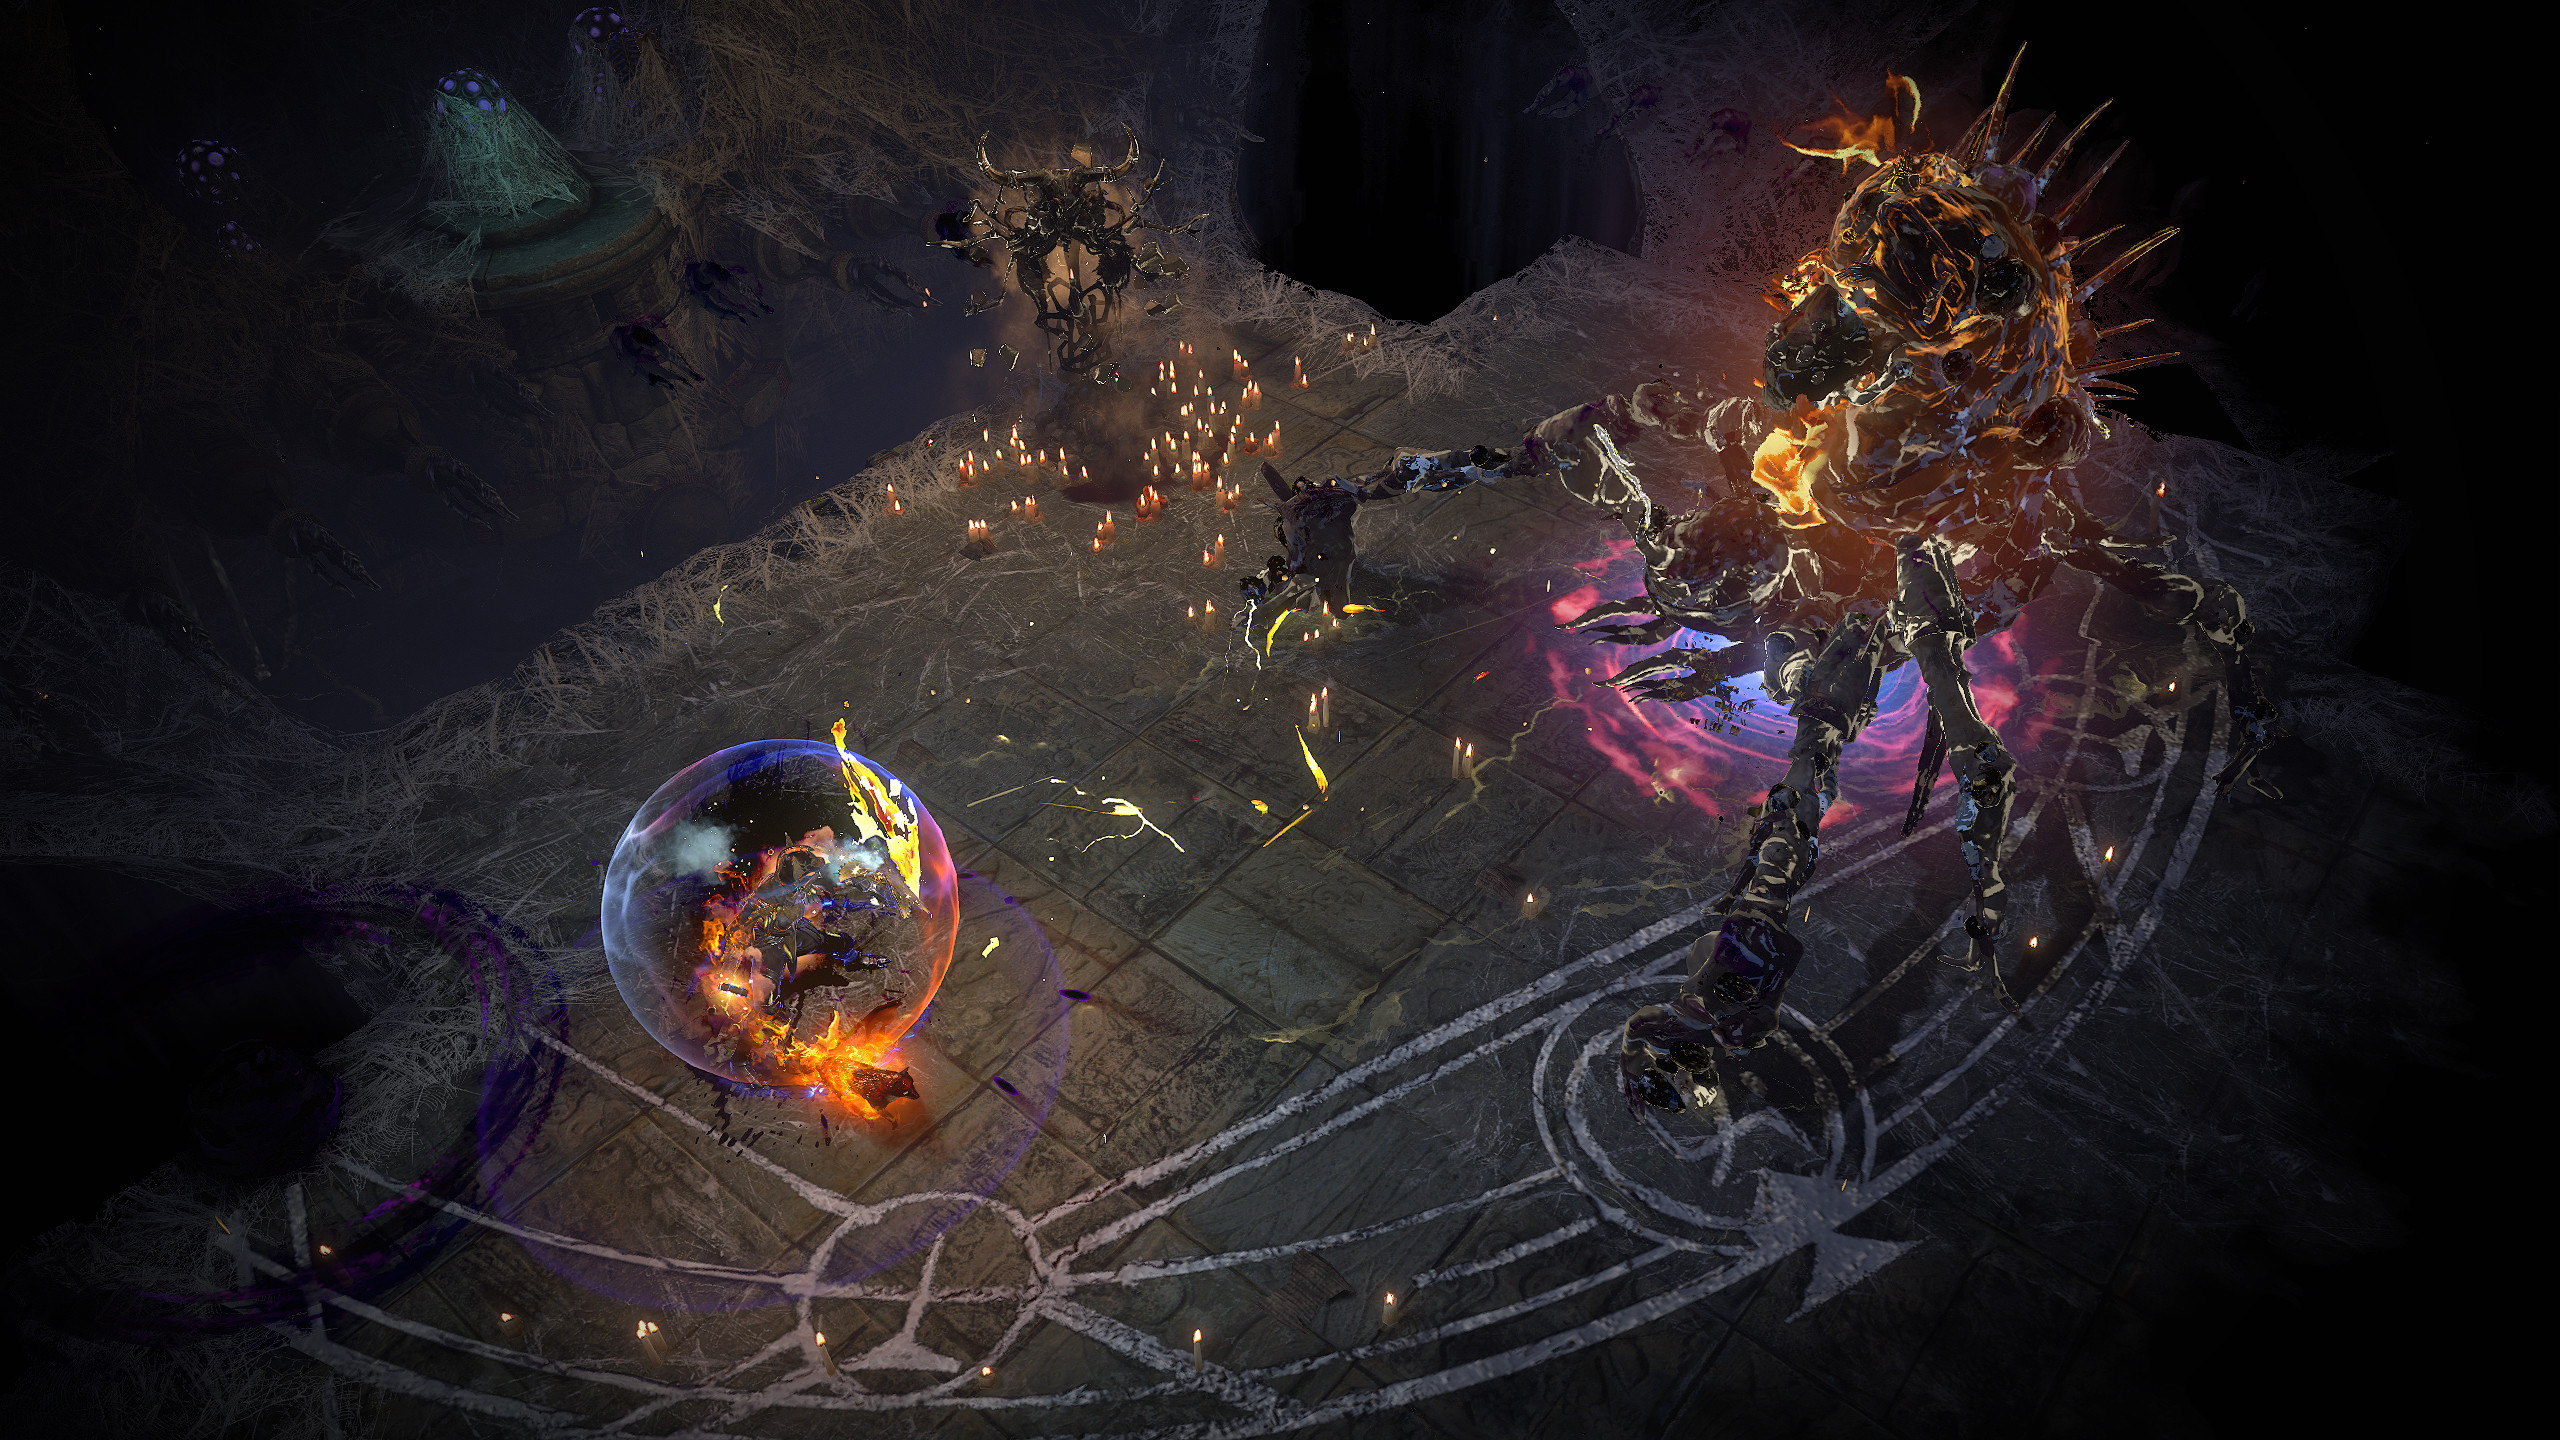 The best games like Diablo: Path of Exile